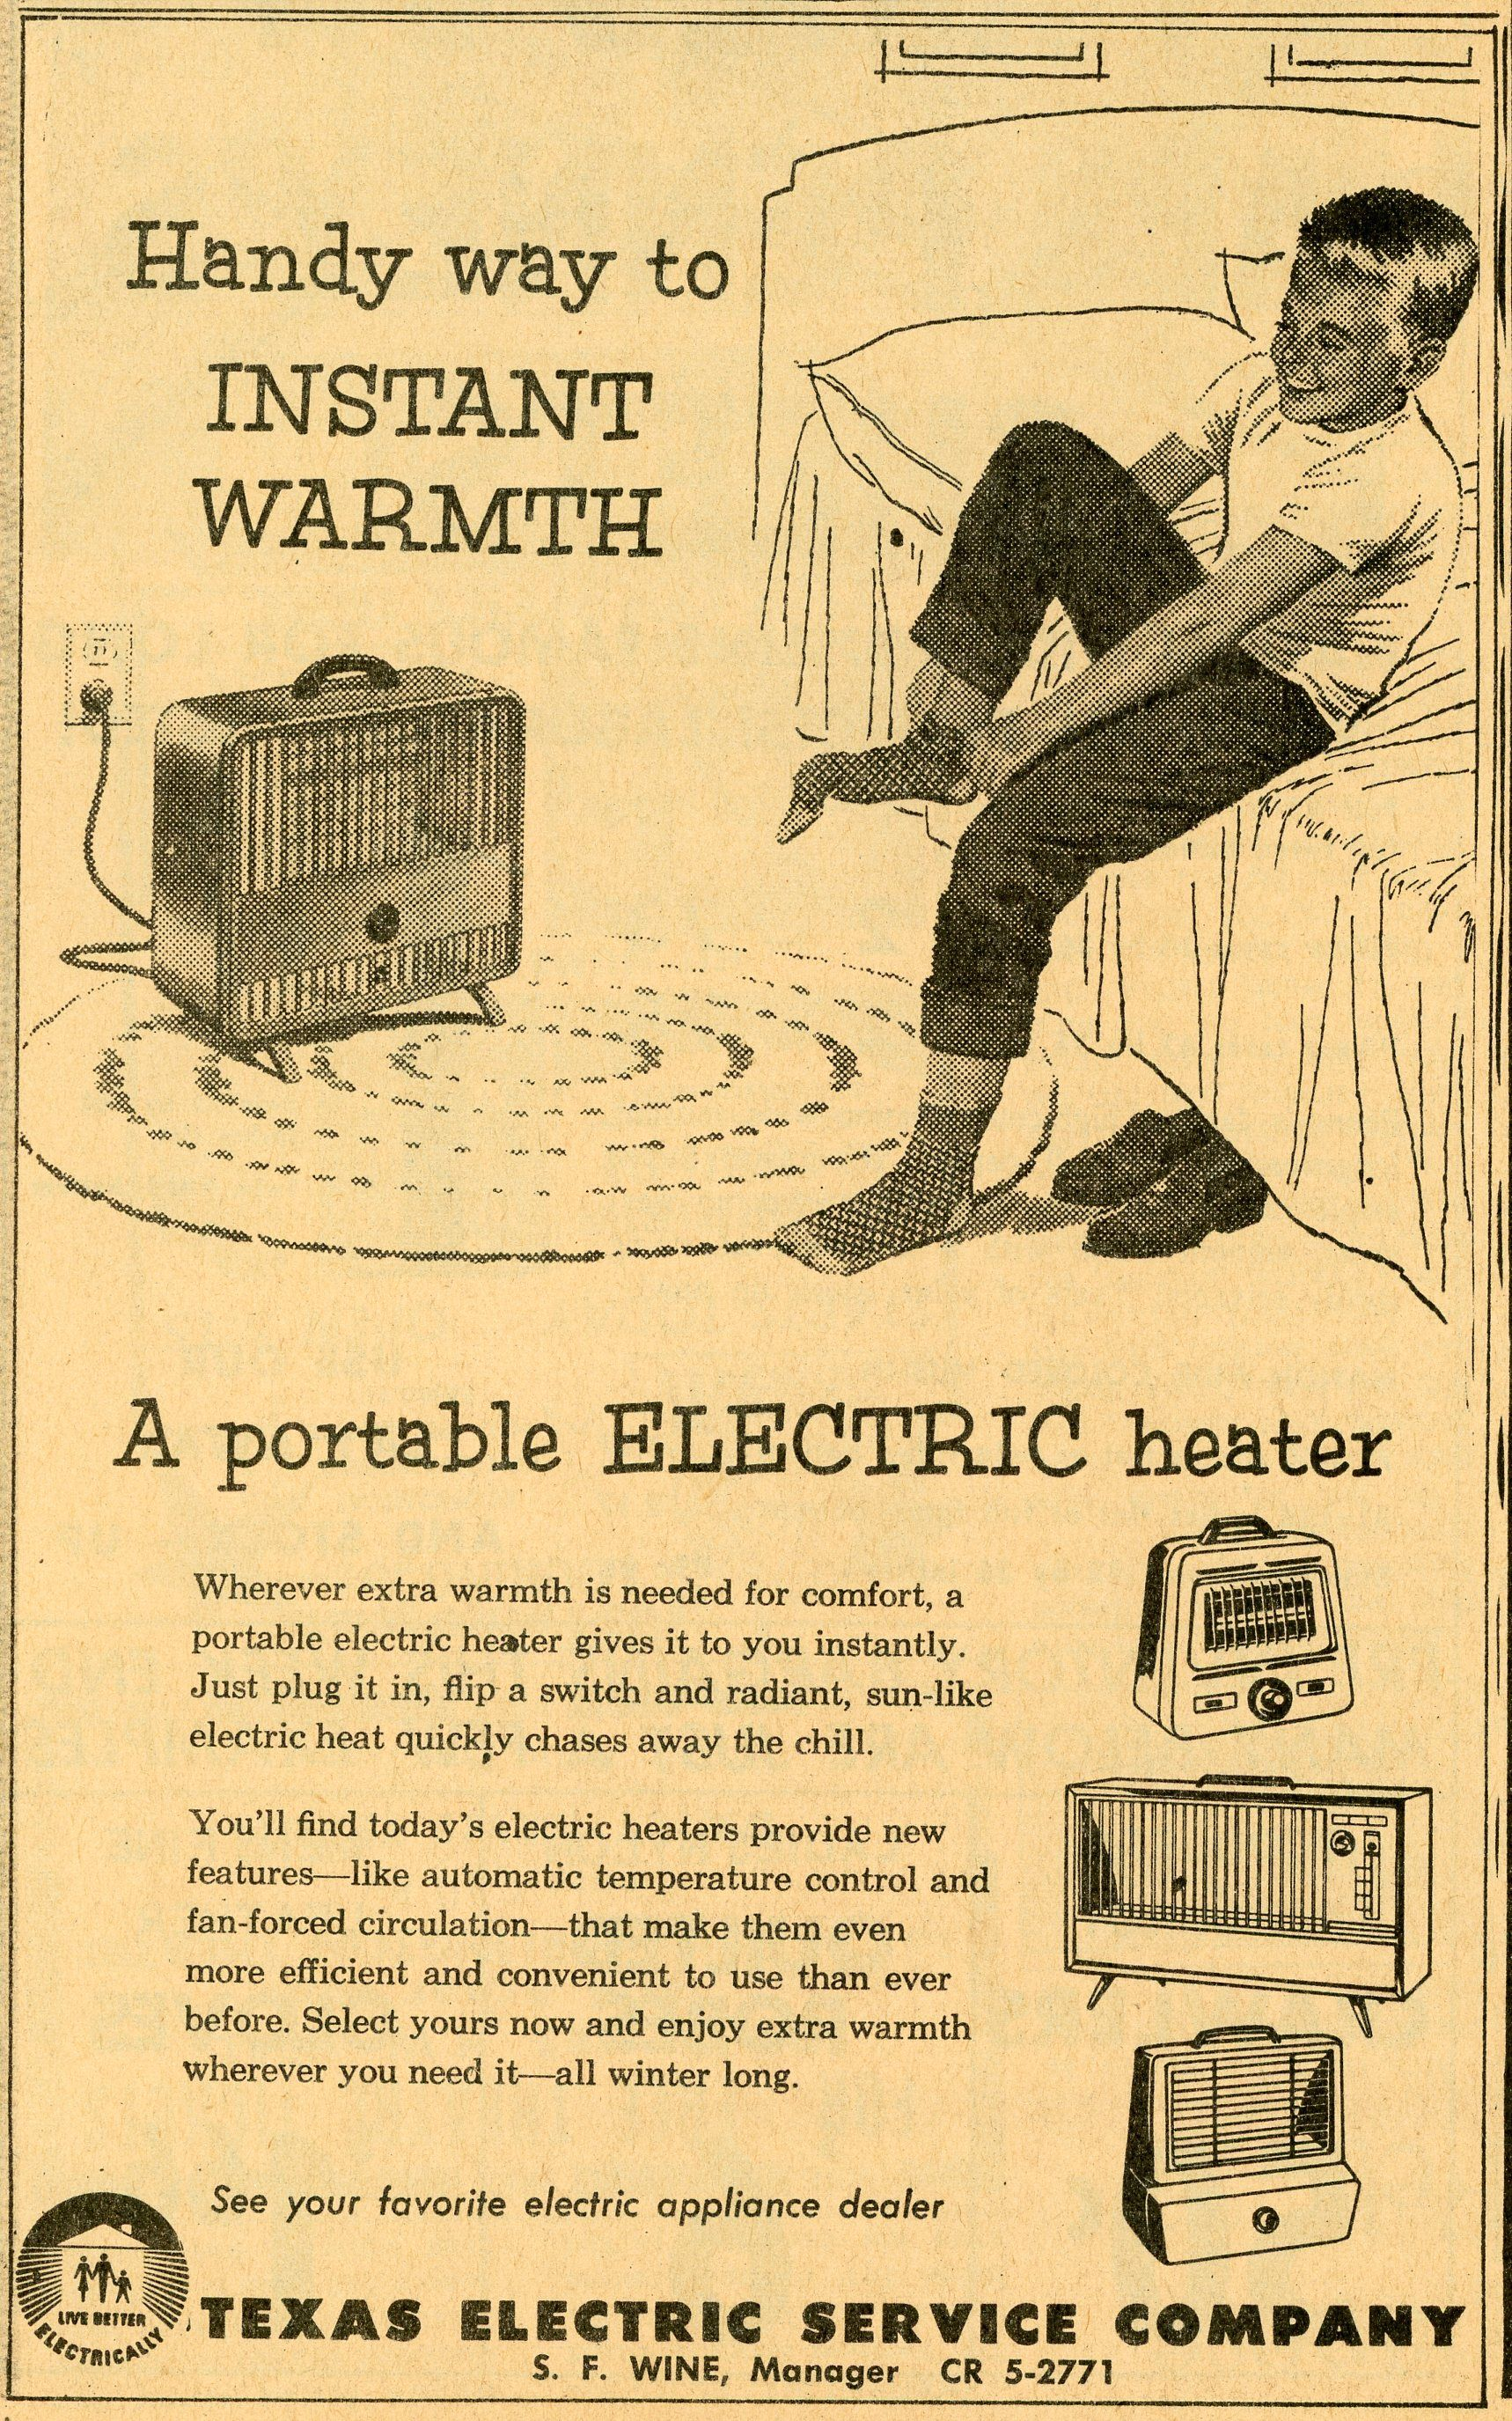 Instant Warmth With Images Portable Electric Heaters Electric